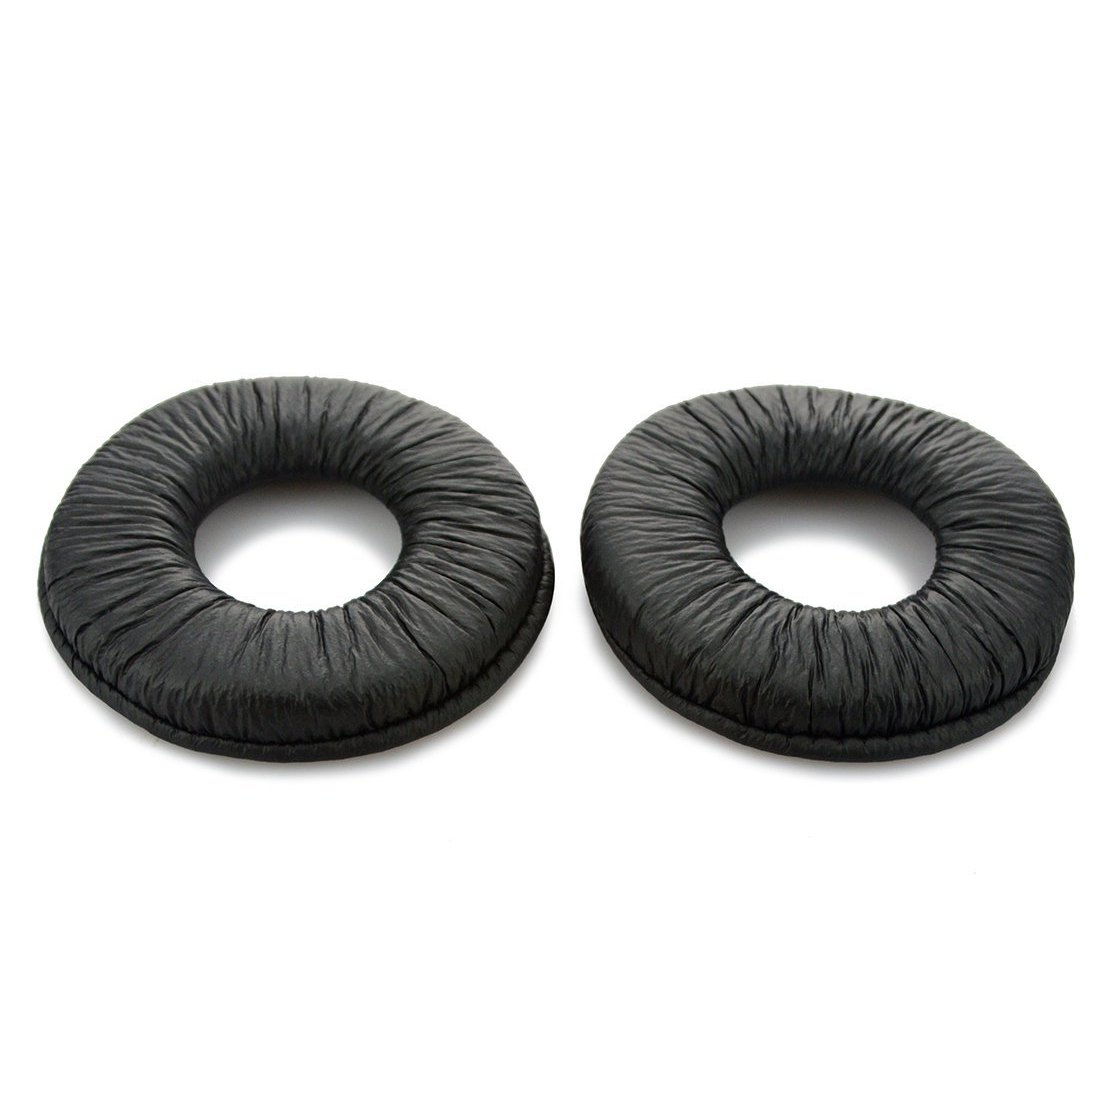 for Sony MDR-V150 V200 V250 V300 V400 ZX300 Headphone Replacement Ear Pad / Ear Cushion / Ear Cups / Ear Cover / Earpads Repai